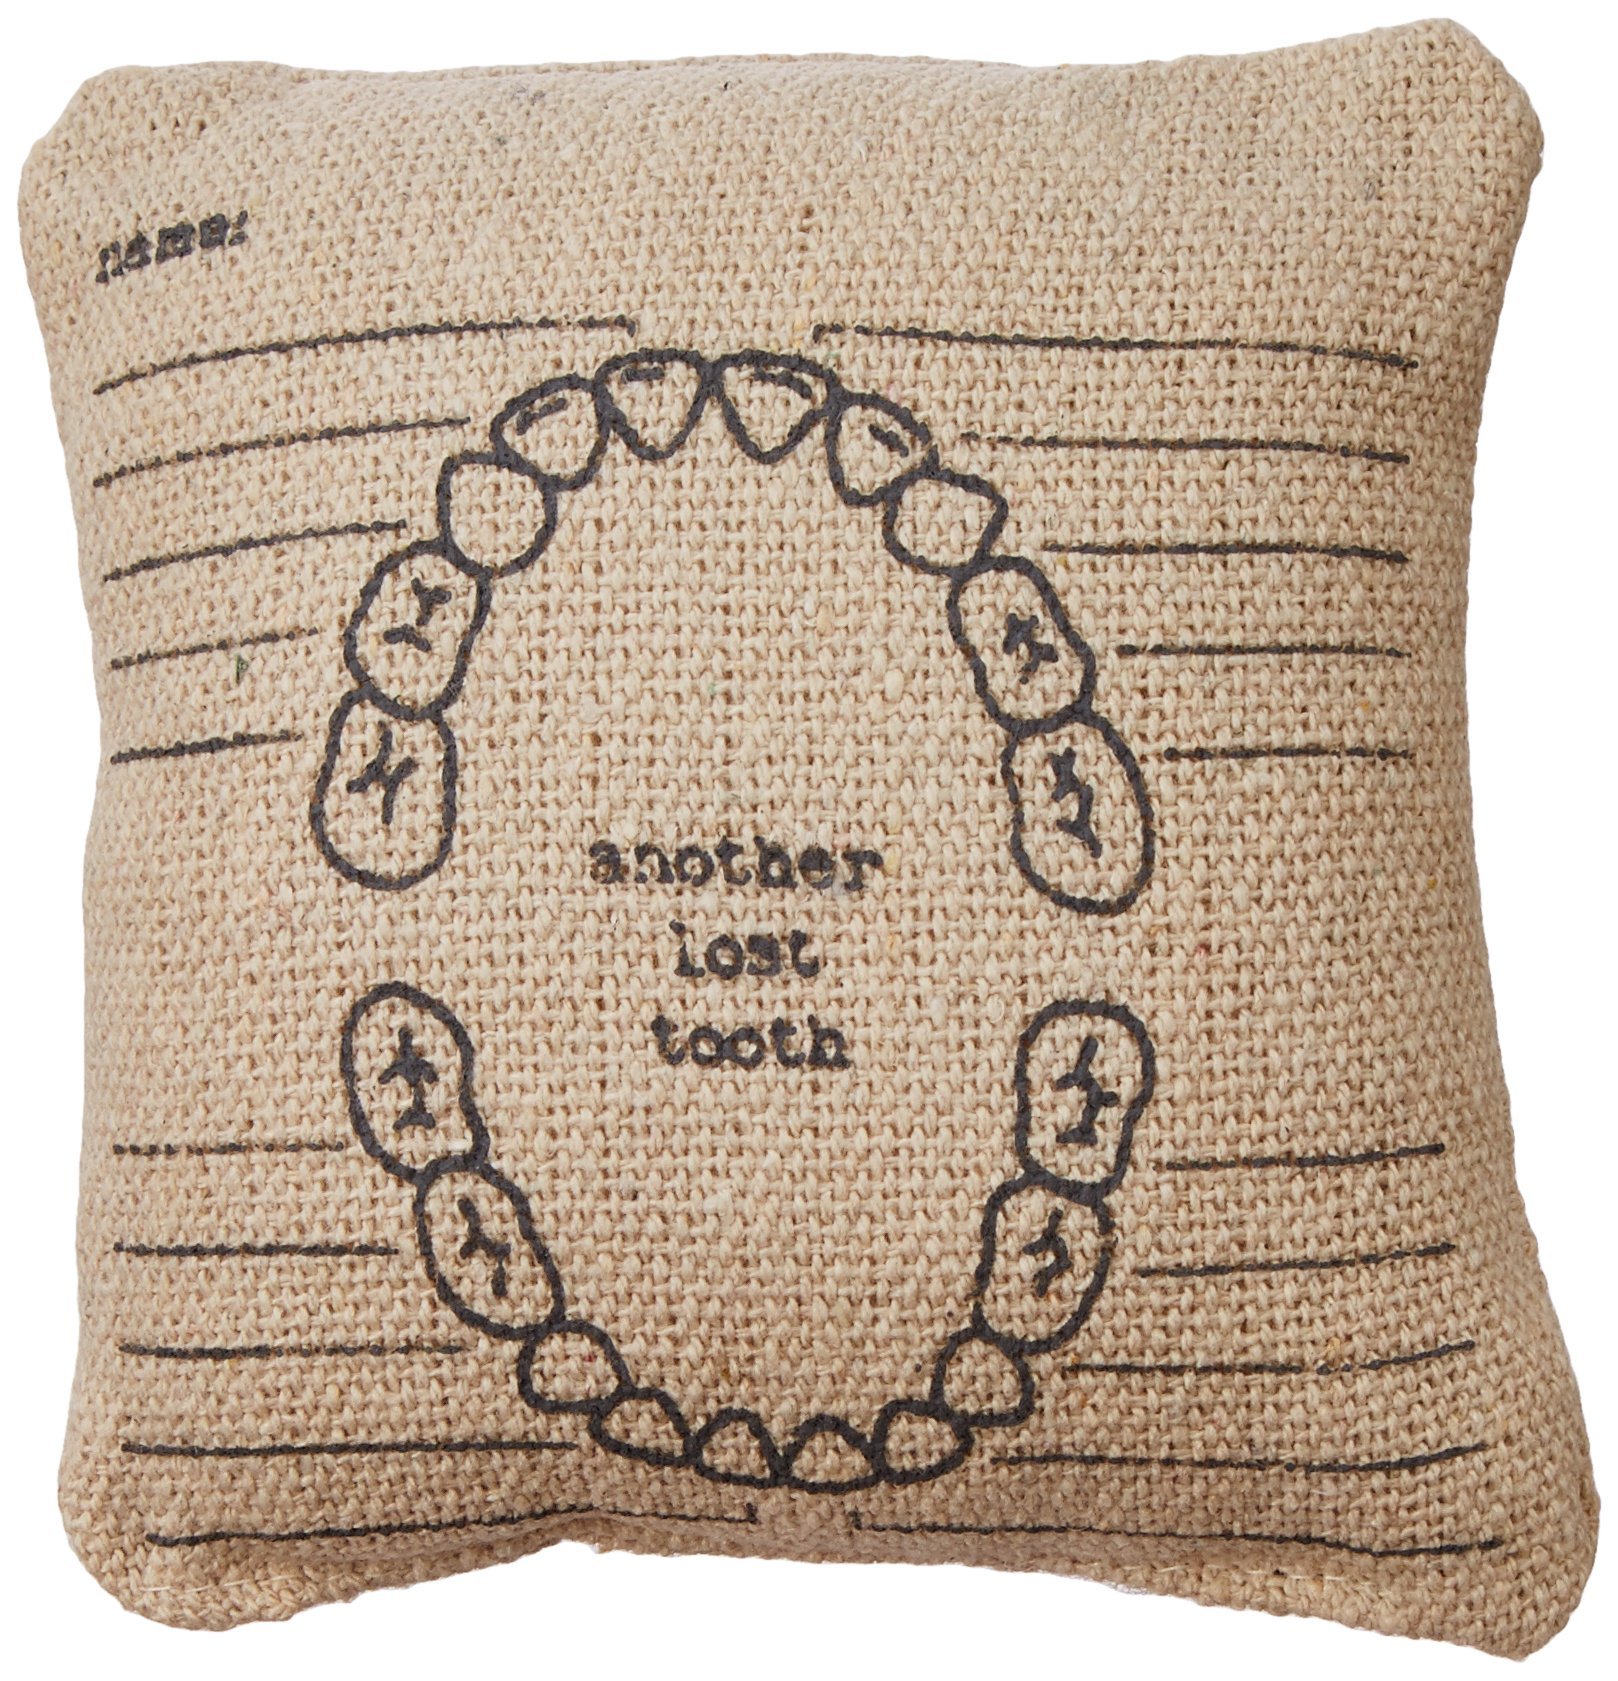 """Primitives by Kathy Mini Linen Accent Pillow, 5.25"""" x 5.25"""" - Stash the tooth fairy cash: mini linen pillow with pocket in back to hold all the loot from the tooth fairy Dimensions: measures 5.25 x 5.25-Inches; 100Percent polyester fiber insert Sentiment reads: another tooth lost - living-room-soft-furnishings, living-room, decorative-pillows - 91fPwg0ODOL -"""